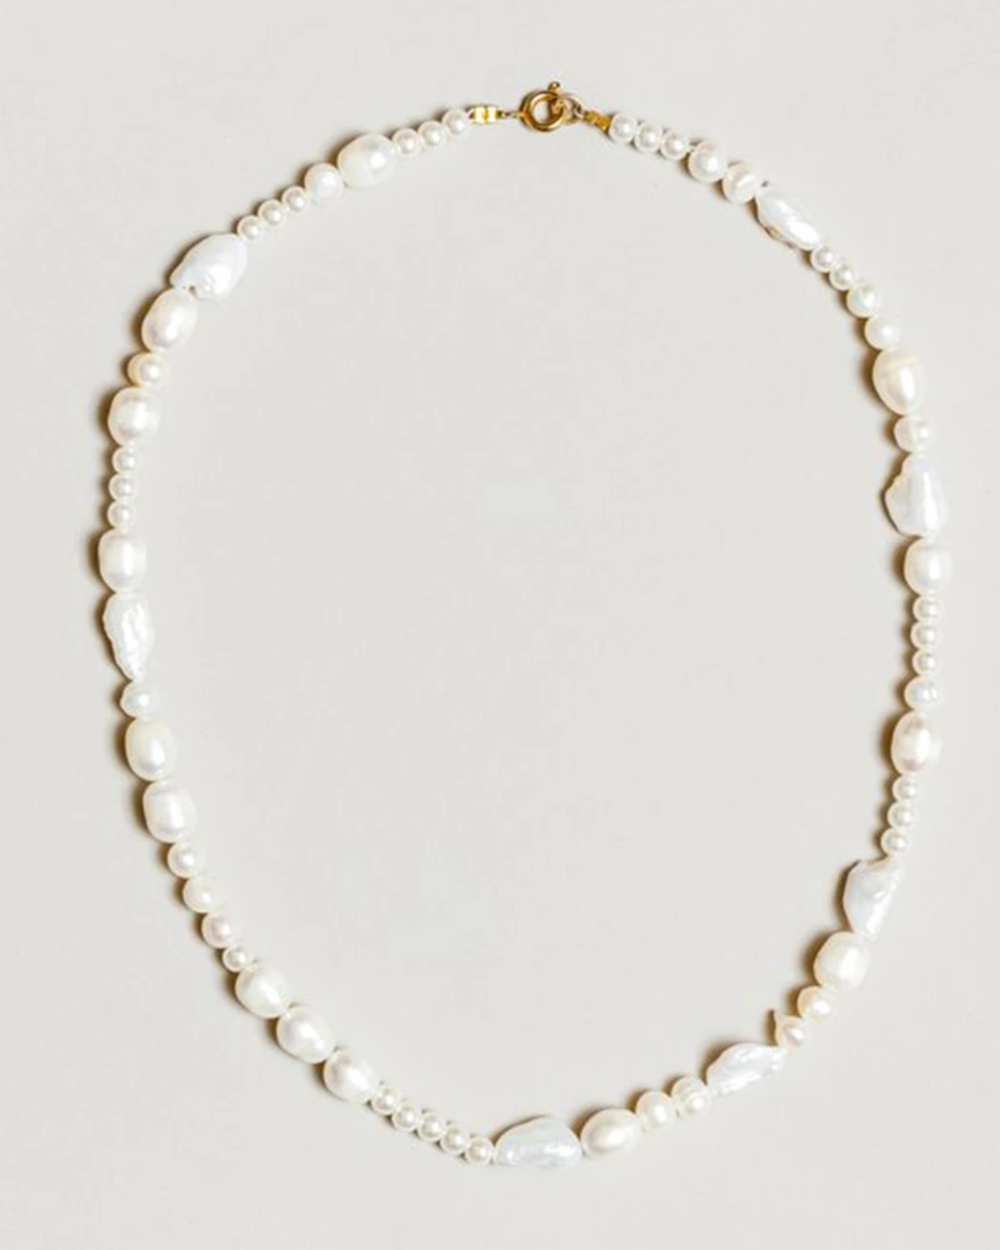 Estelle Pearl Necklace Wolf Circus Anomie Pearl Necklace Necklace Pearls